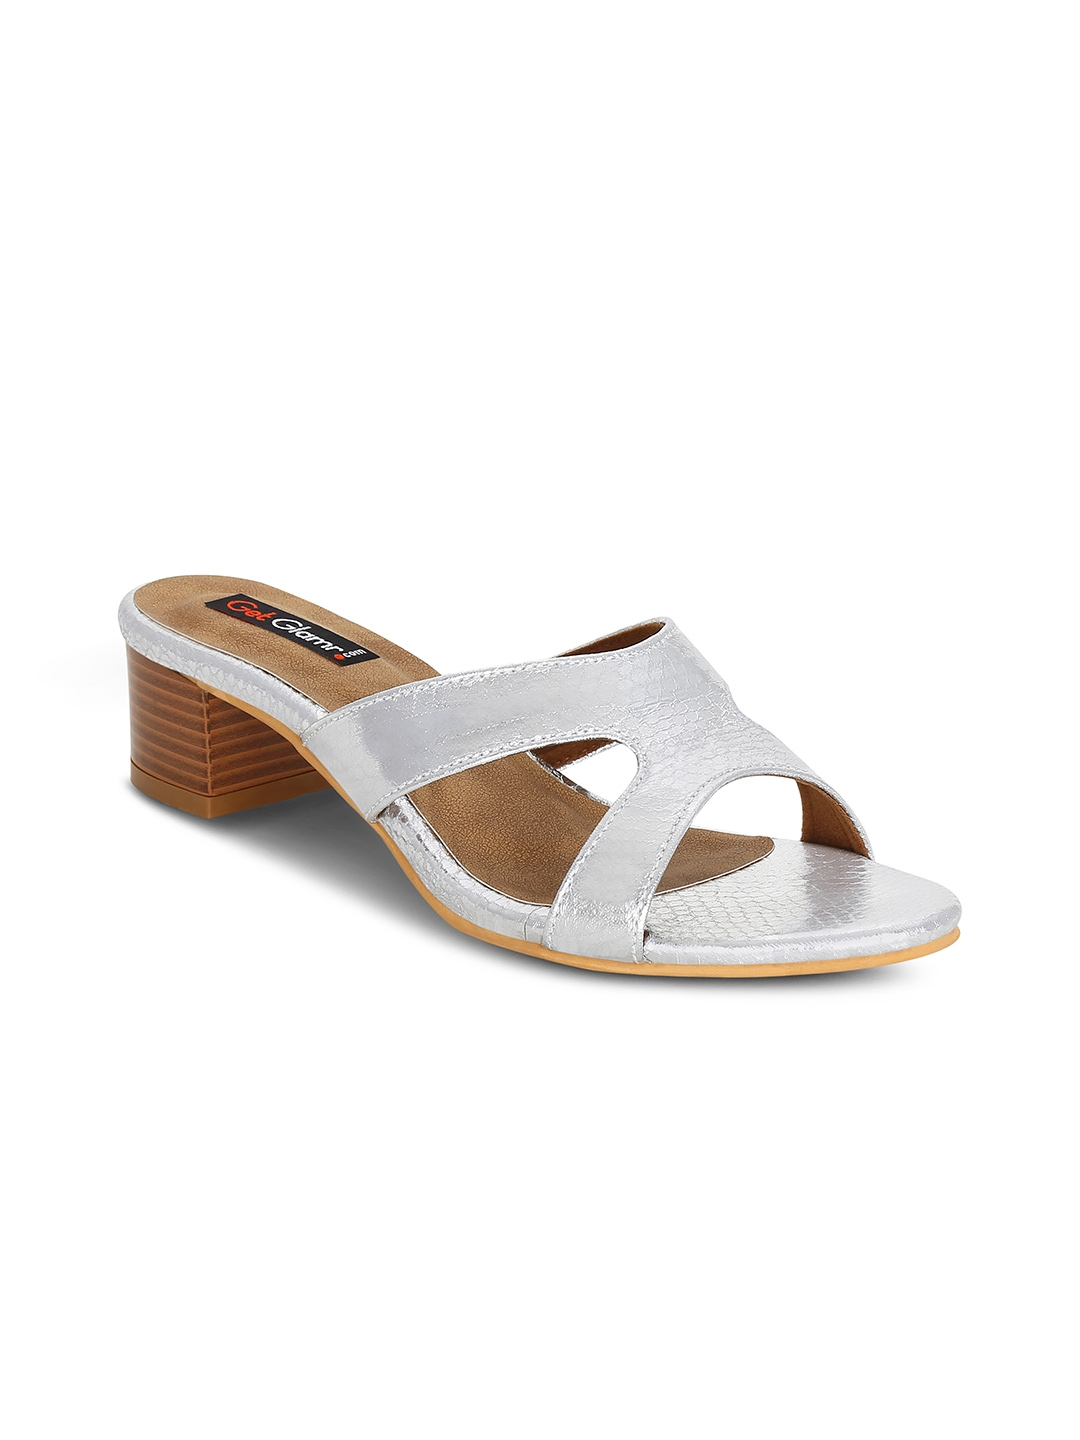 Buy Get Glamr Women Silver Toned Solid Sandals - Heels for Women ... d3e880114f00